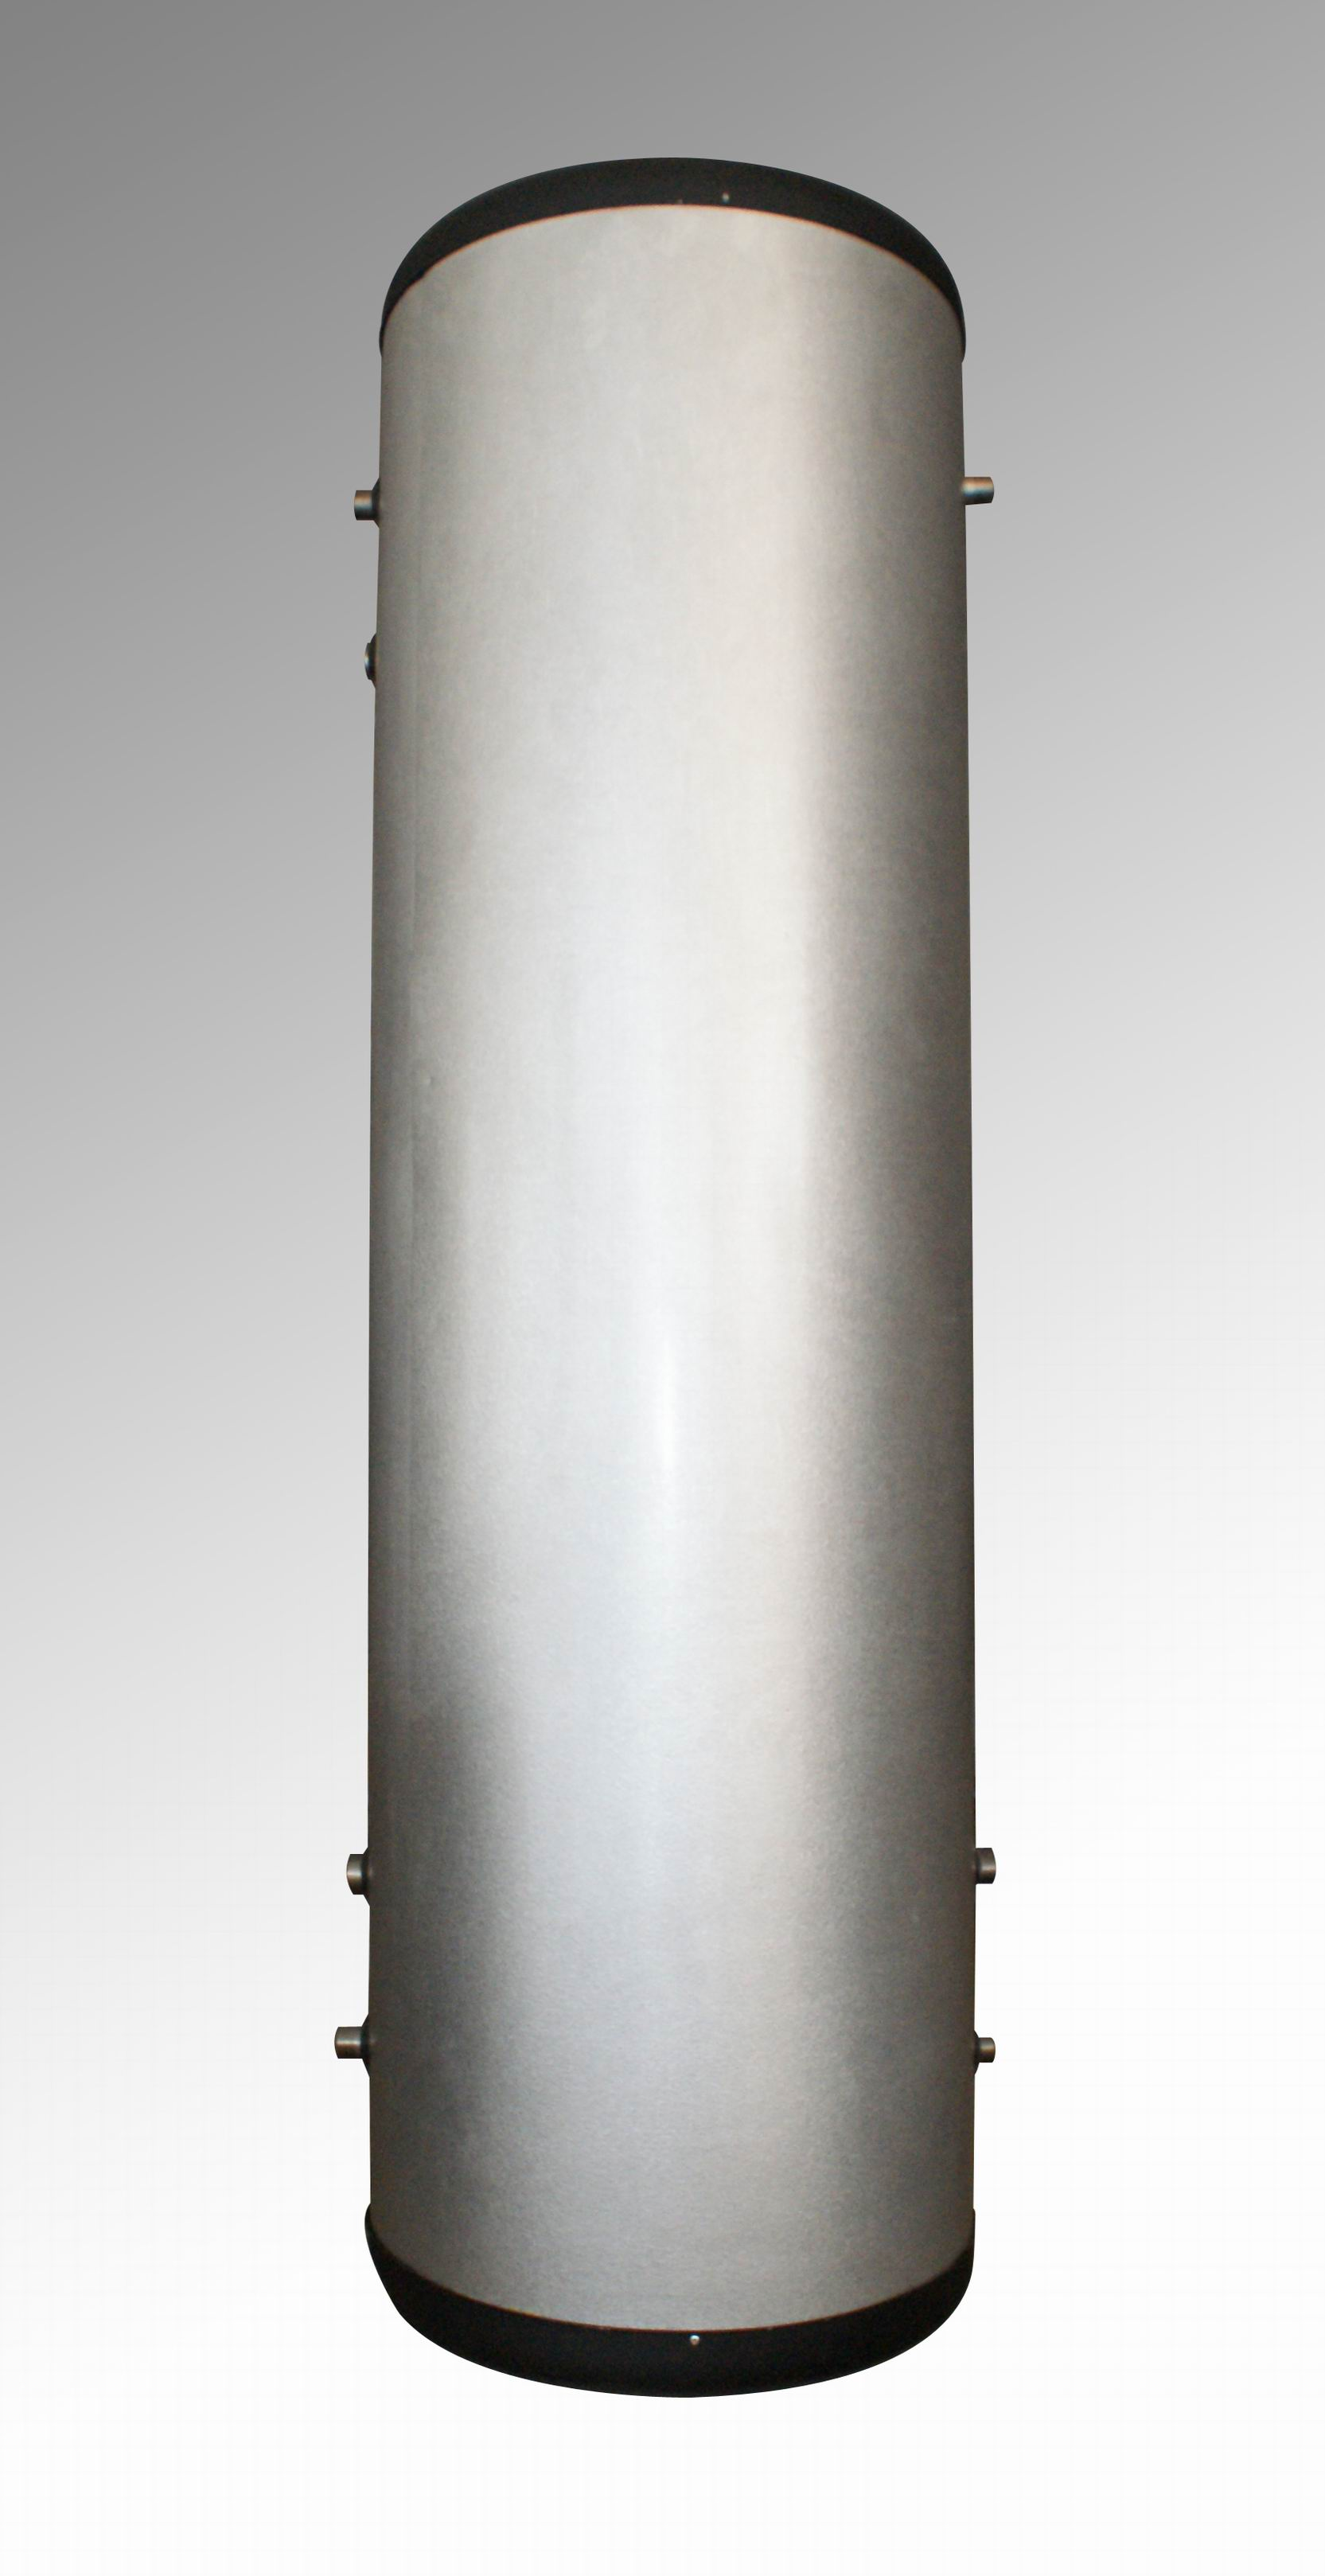 Heat exchanger copper tank with welded steel structure for Copper water tank